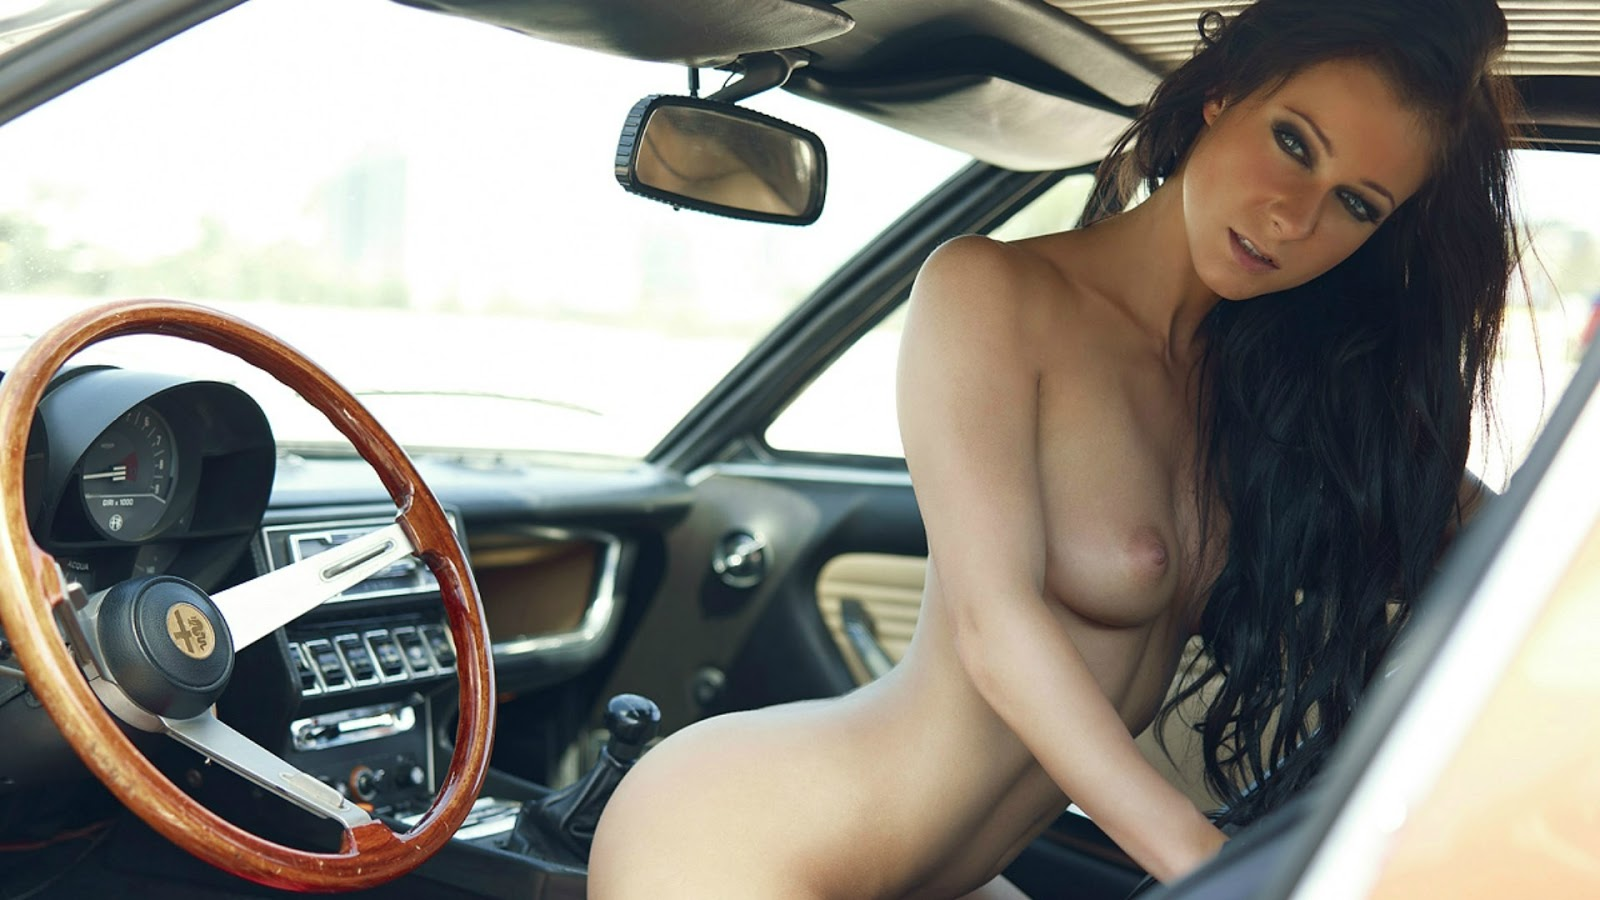 Melisa Mendiny Naked In Car Nude Wallpaper